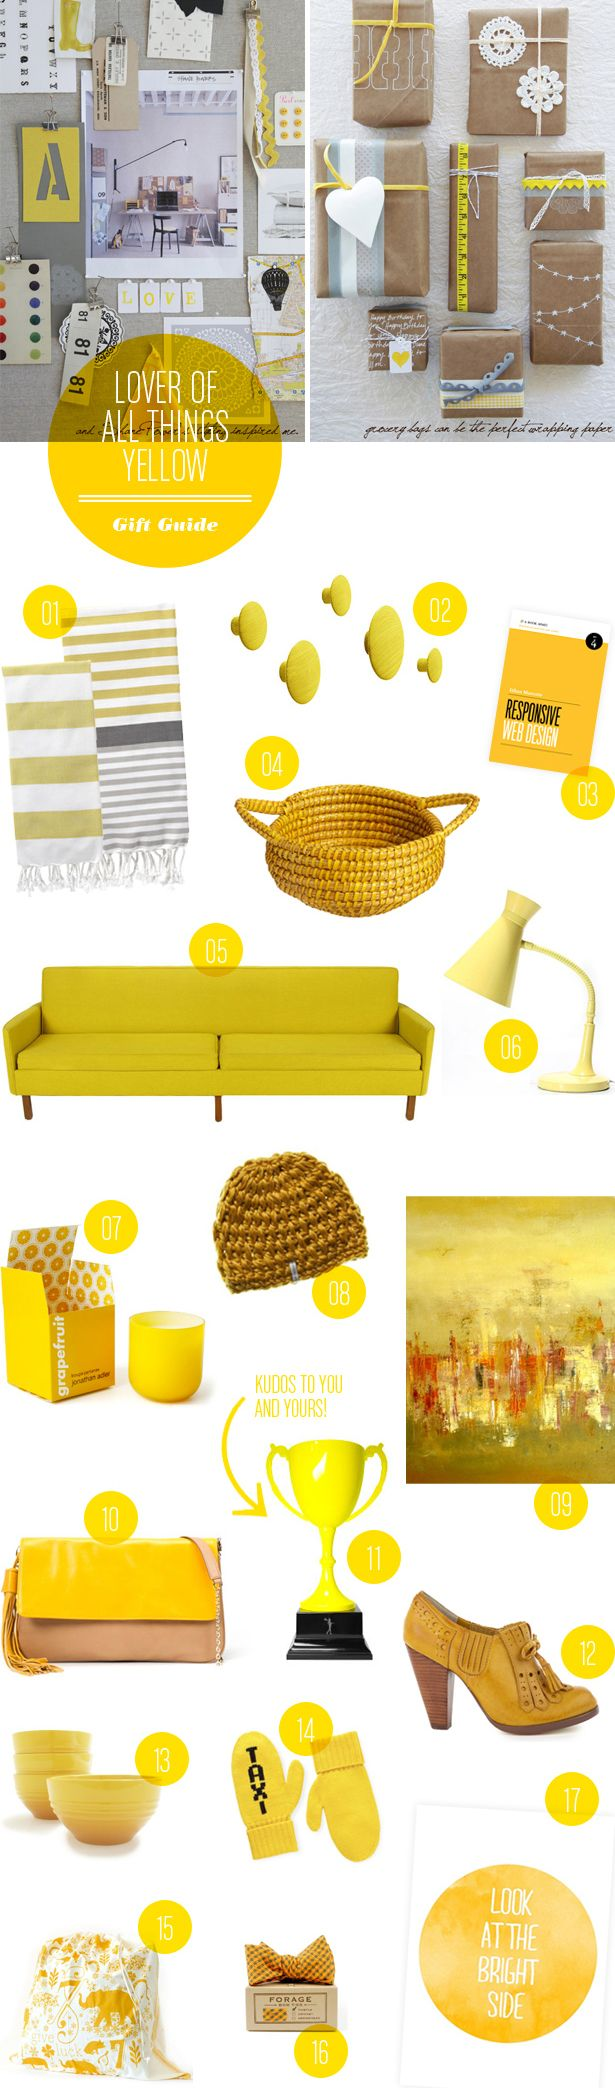 1000+ ideas about Yellow And Brown on Pinterest.